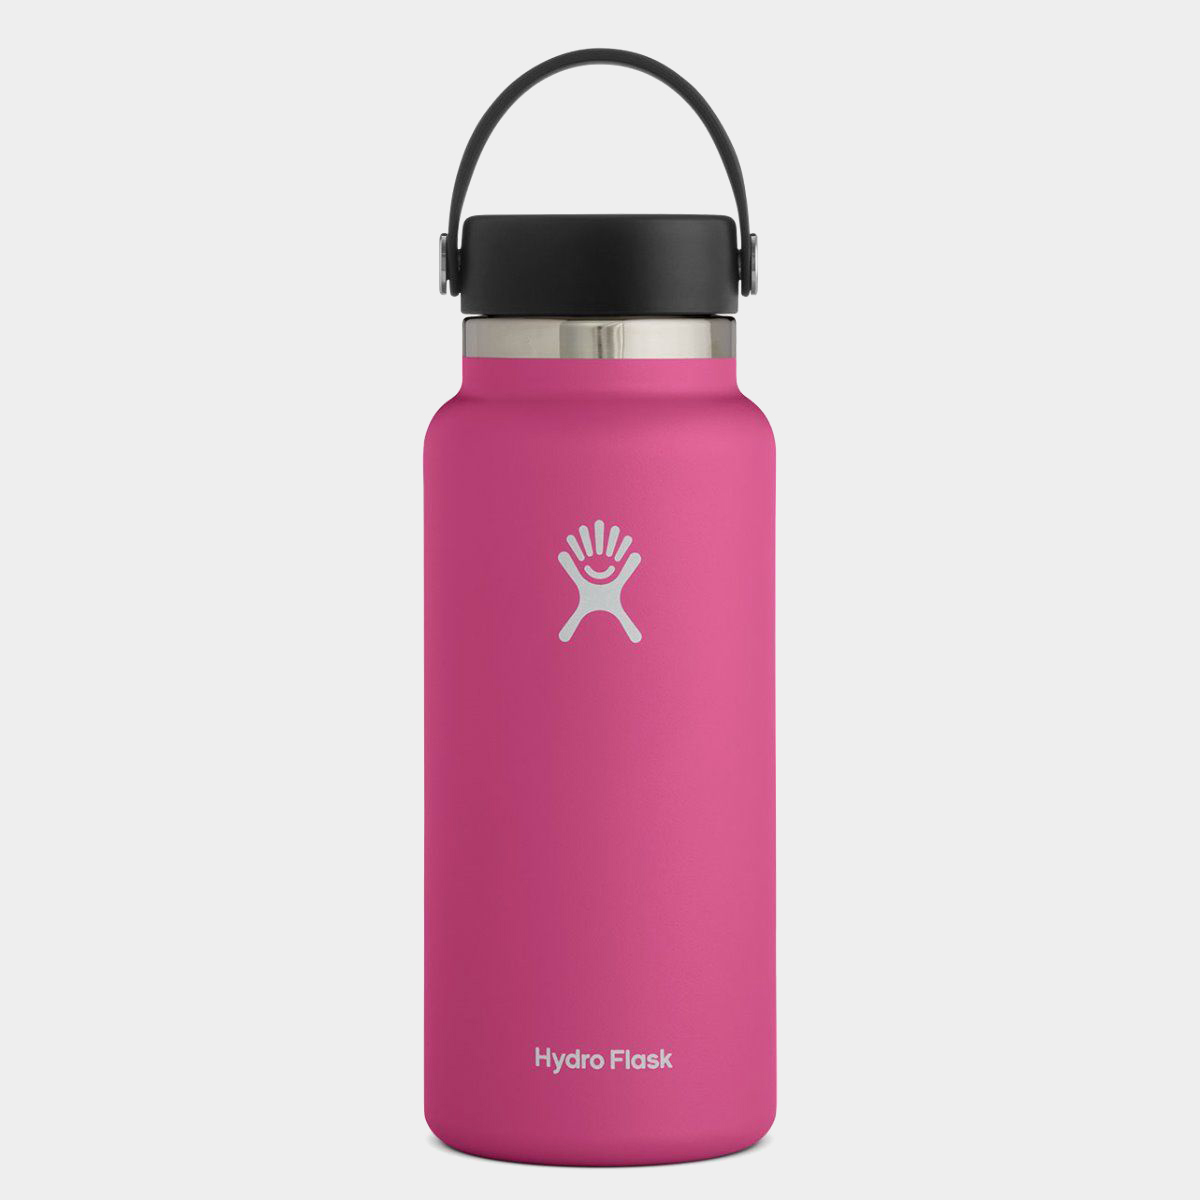 32-oz-(946-ml)-Wide-Mouth Hydro Flask